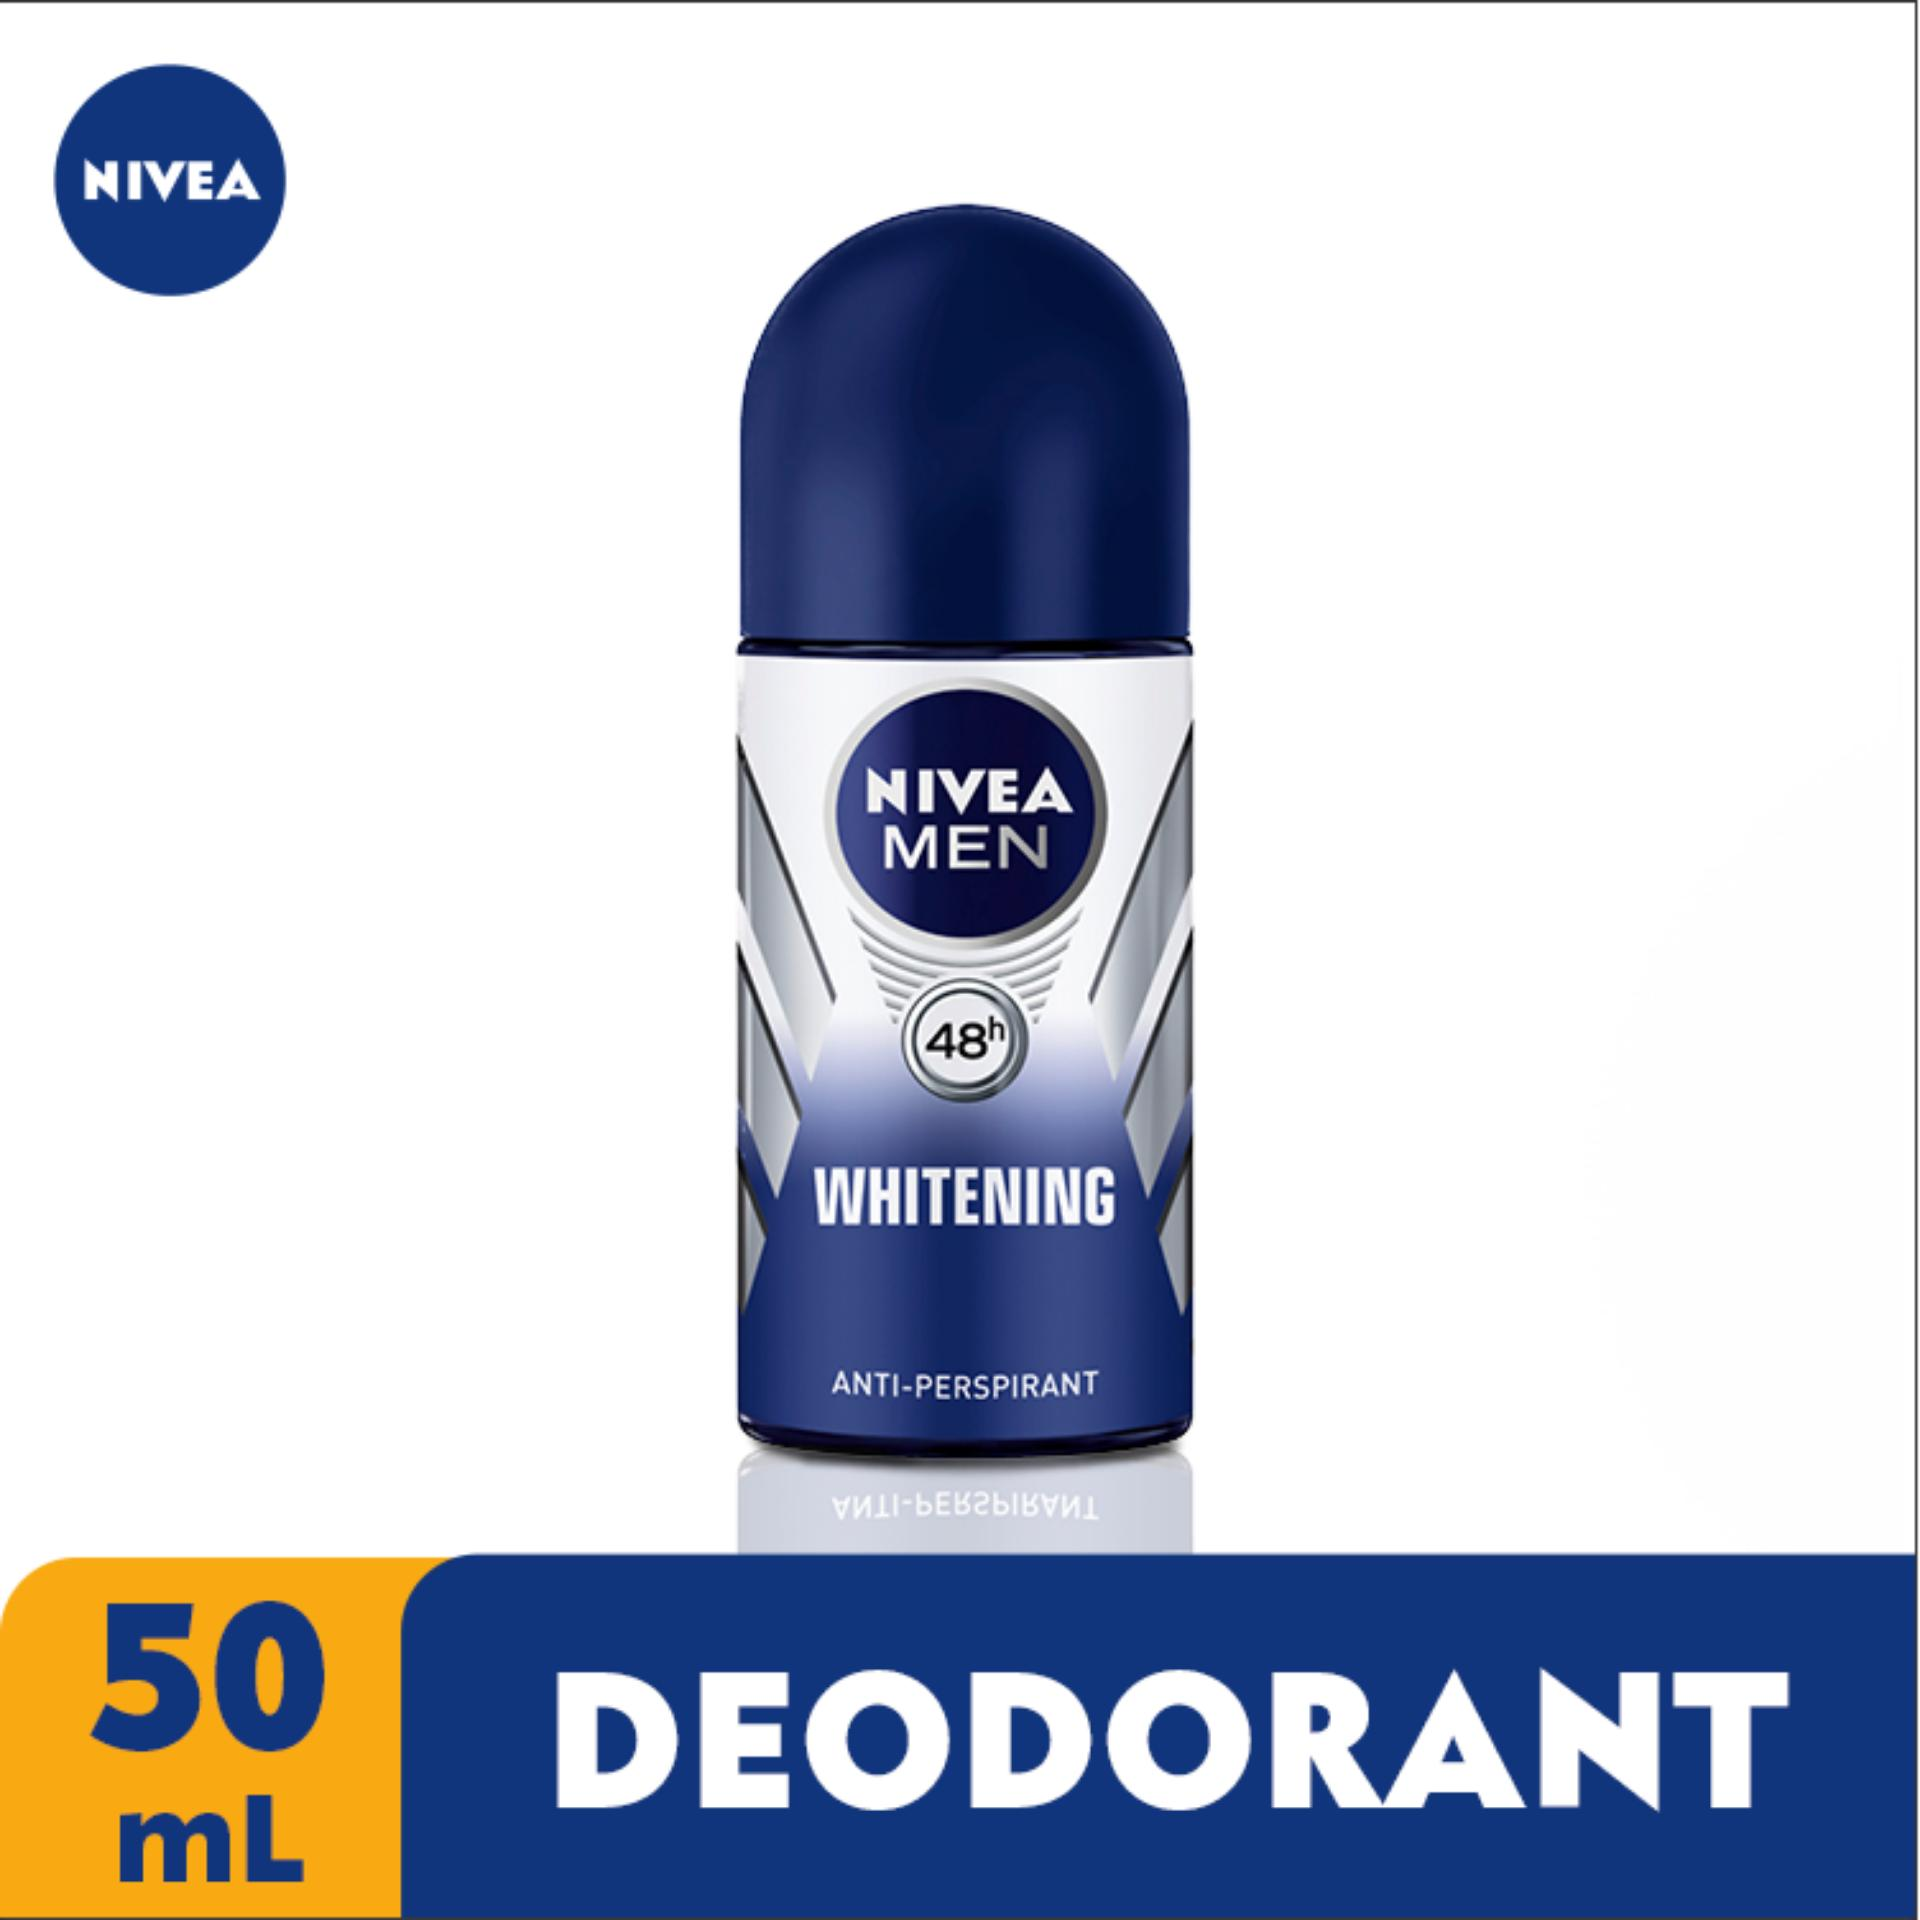 Deodorant For Men Brands Mens On Sale Prices Set Nivea Invisible Black White Roll 50 Ml Whitening 50ml